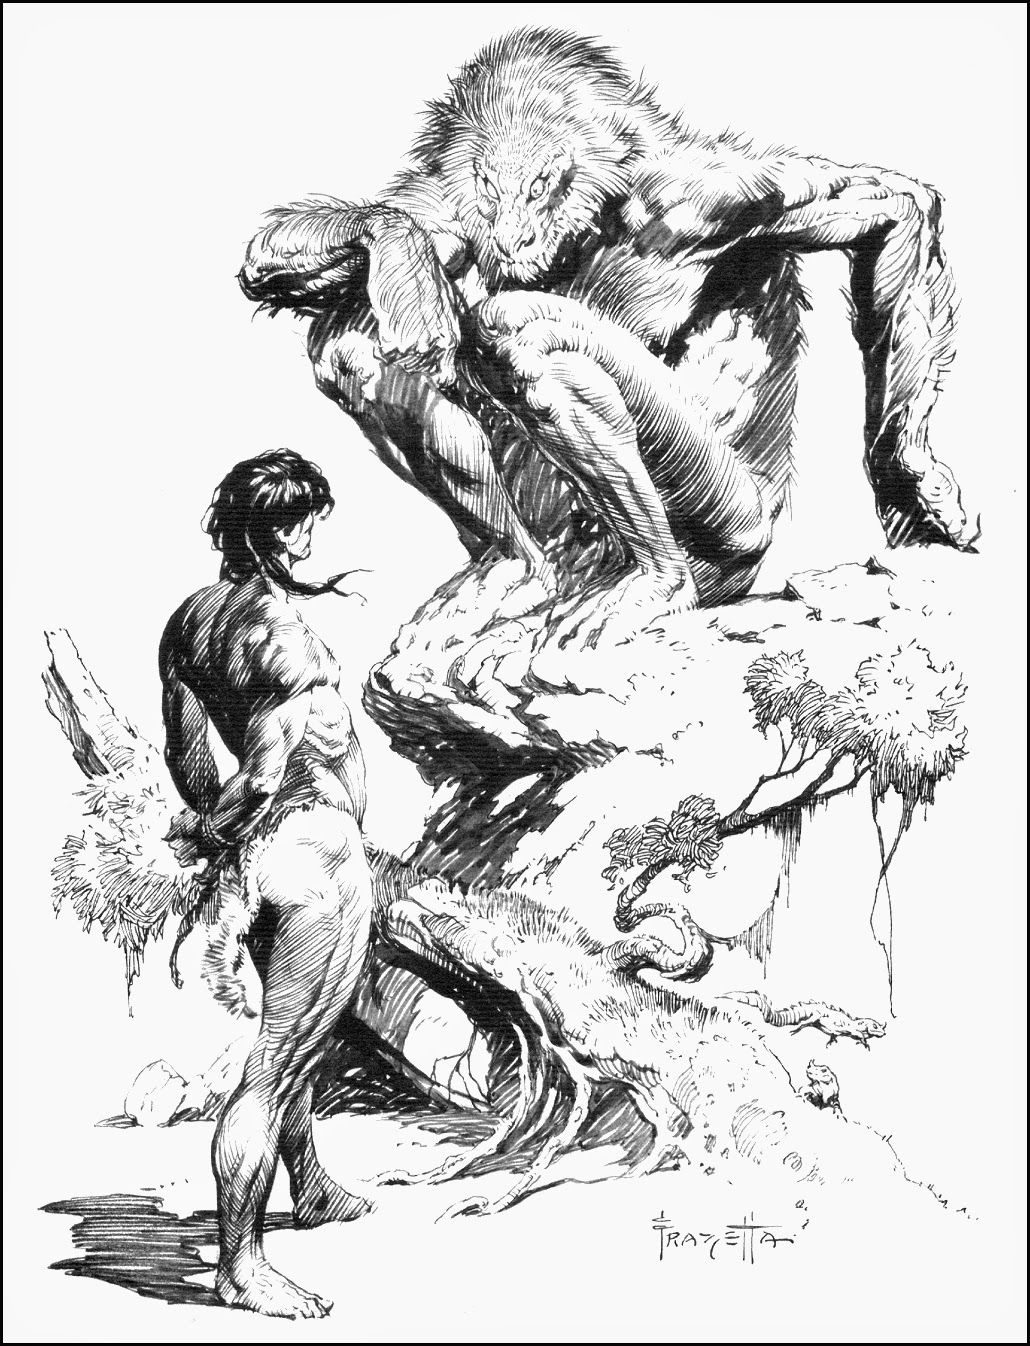 Cap'n's Comics: Some Canaveral Press by Frank Frazetta